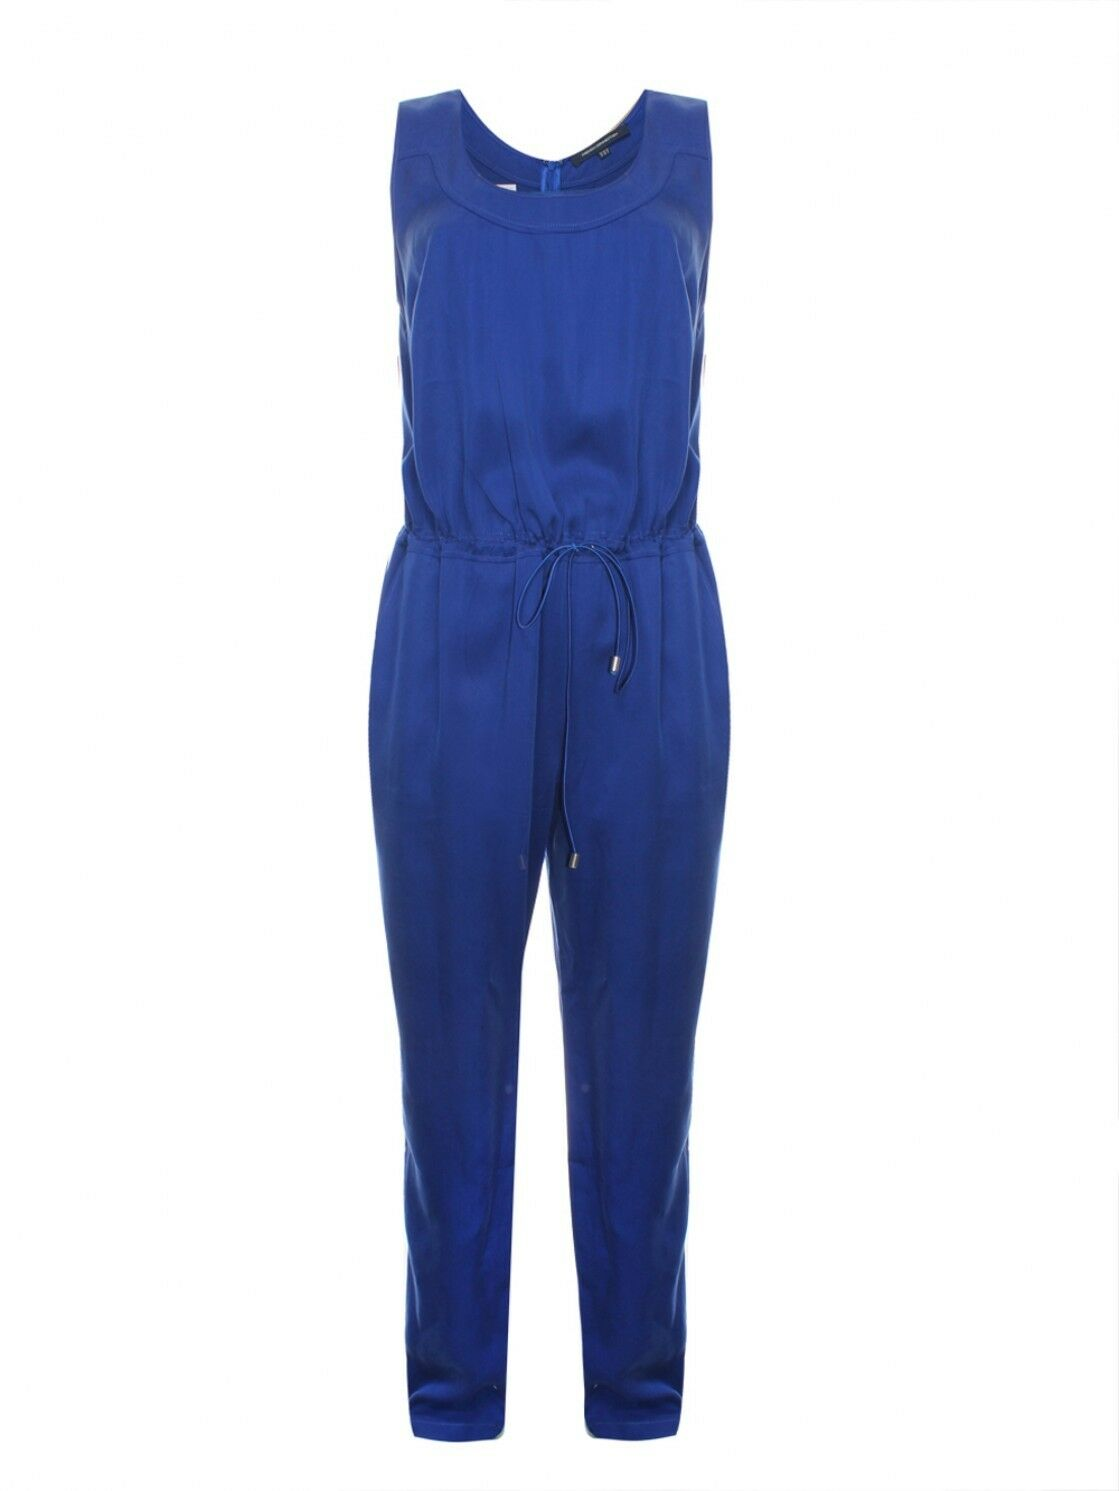 French Connection Miami Drape Jumpsuit BNWT Designer womens Clothing